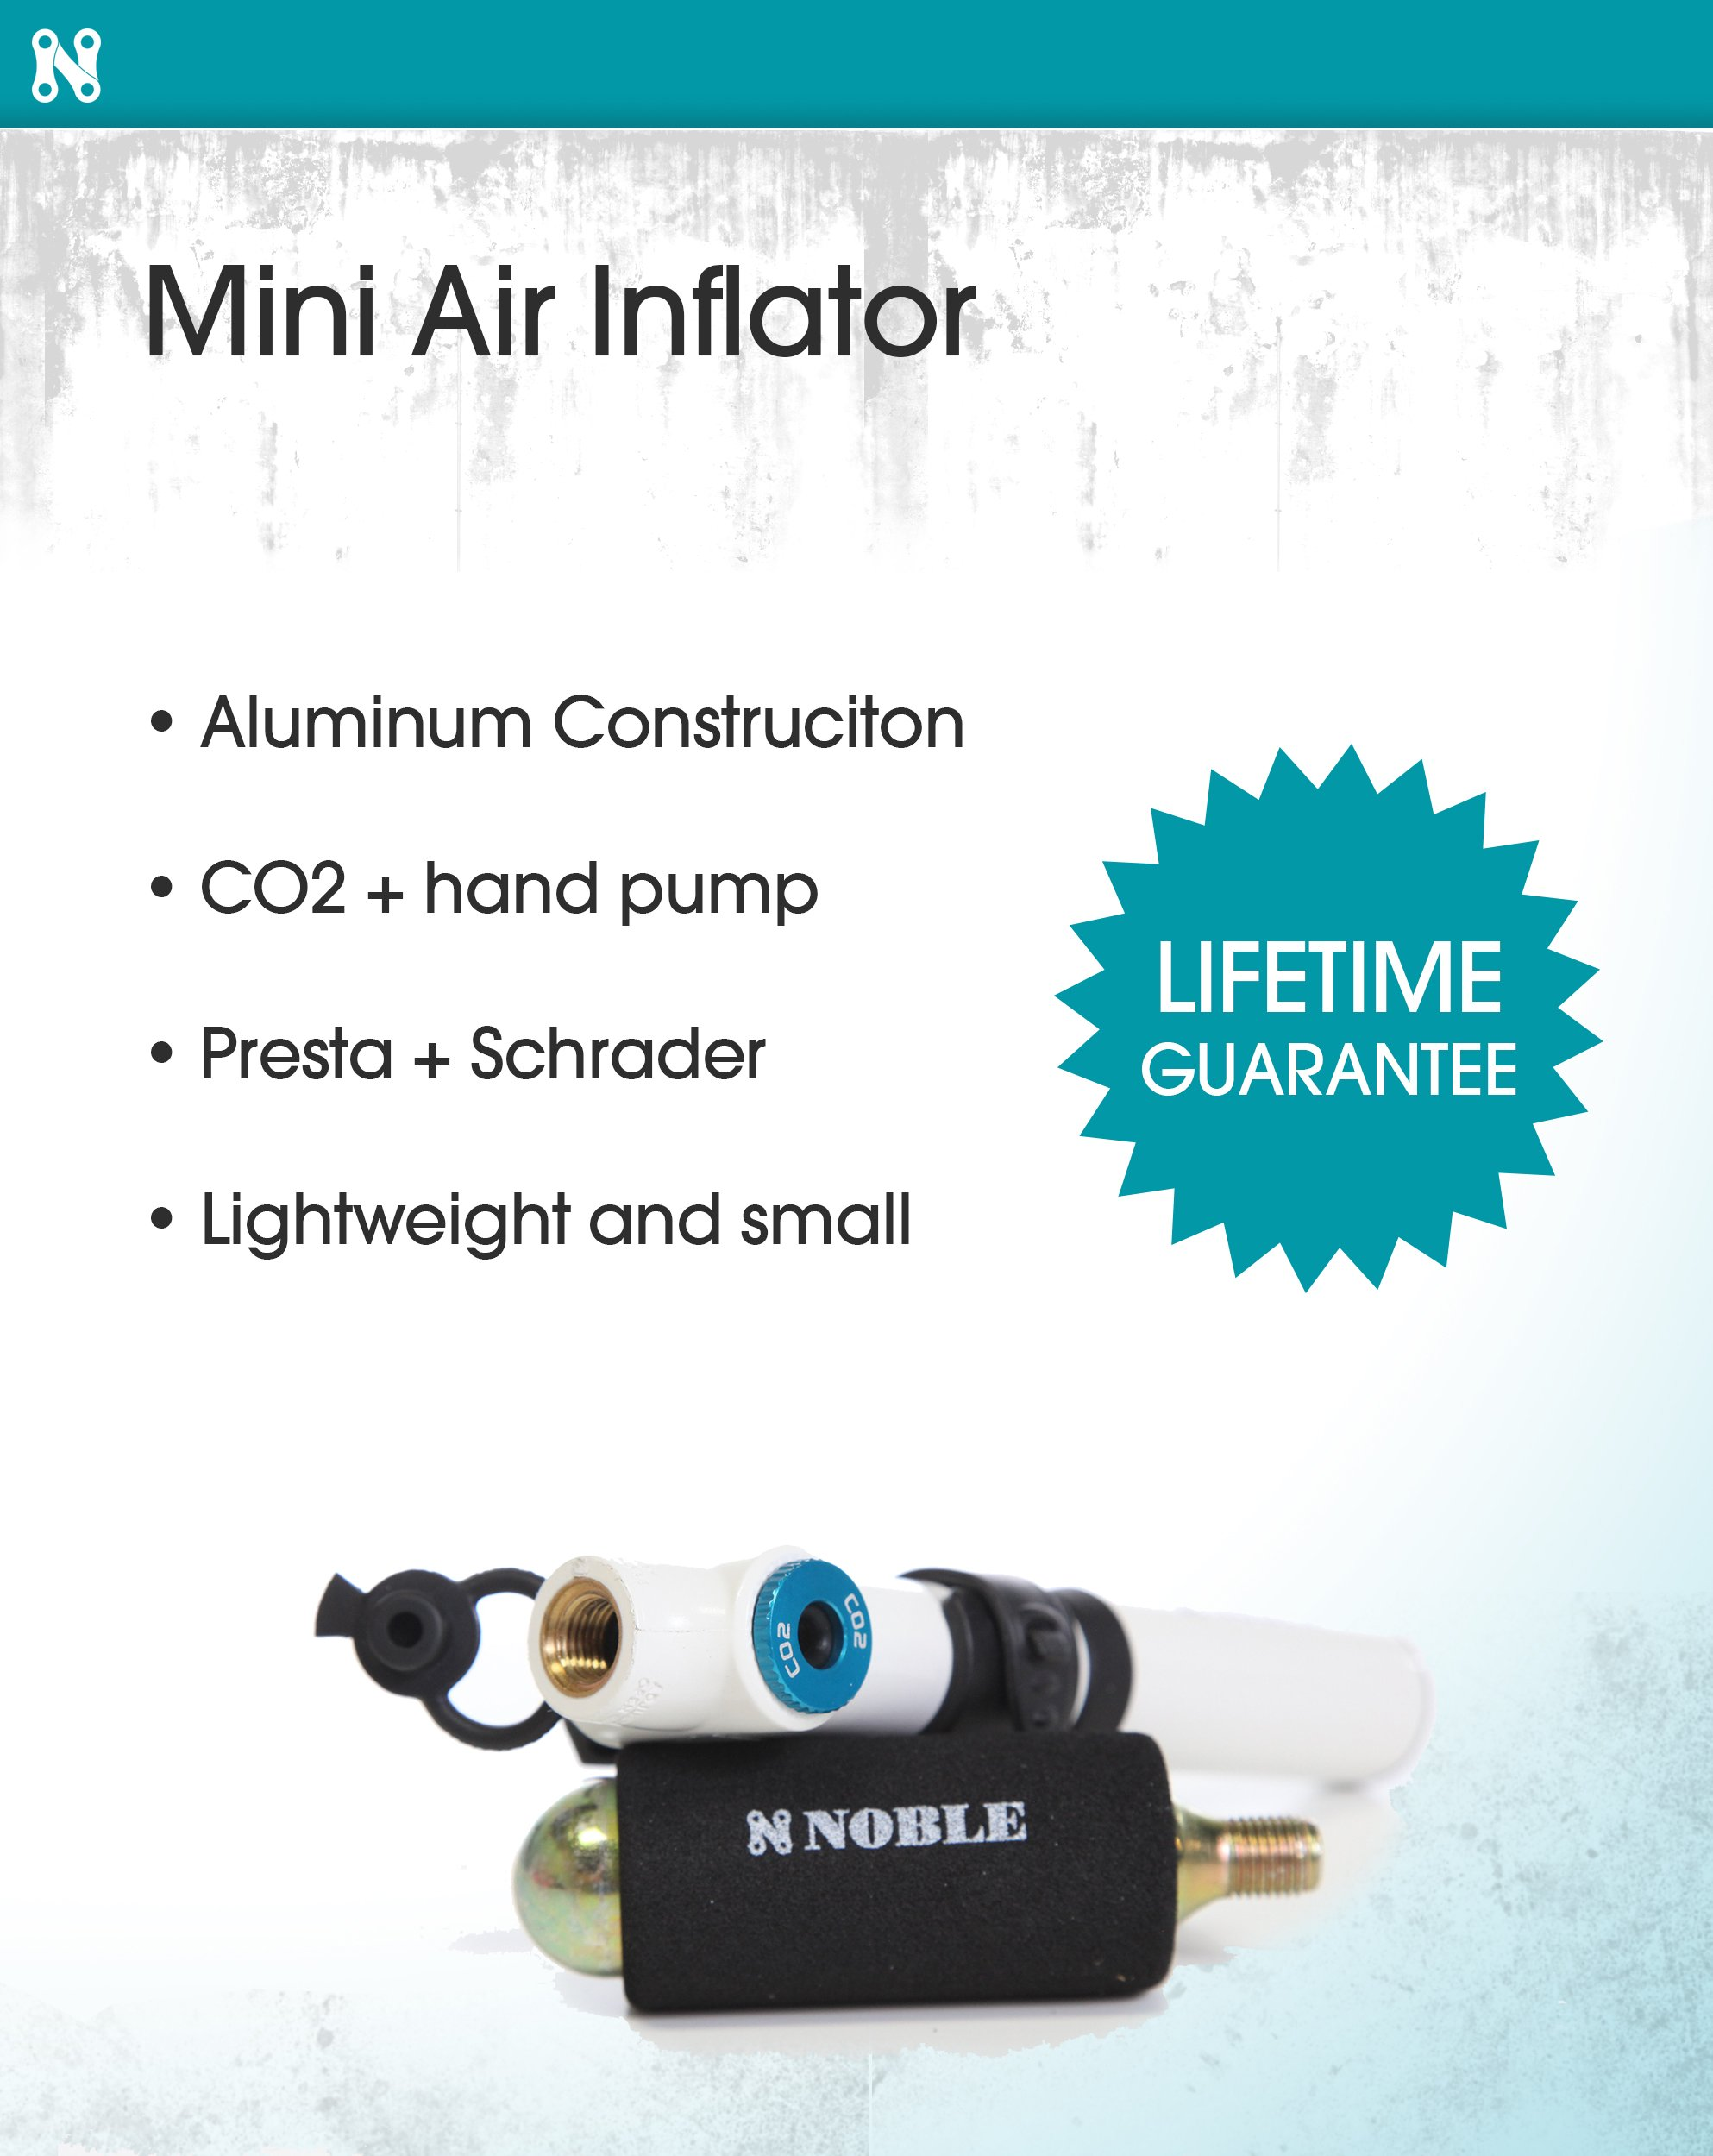 Portable Mini Air Inflator Pump with CO2 Pressure Valve for Bicycle Tire - Small Handheld Tool Fits both Dunlop and Presta Valves - Perfect Bike Accessory to Keep Tires Inflated and on the Road by Noble Cycling (Image #2)